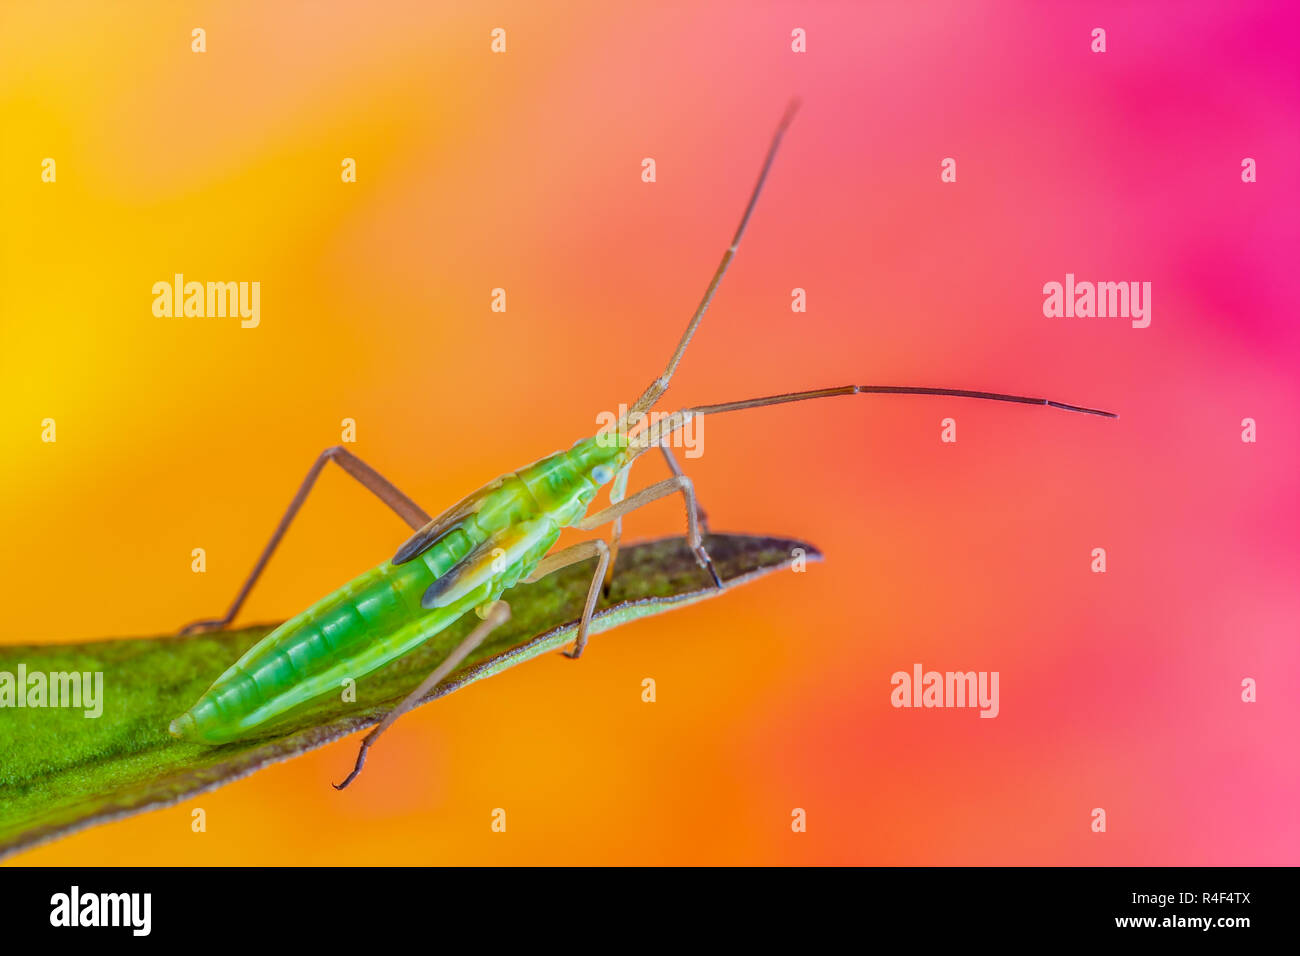 Very sharp and detailed study of an insect taken with a macro lens stacked from many images into one very sharp photo. - Stock Image